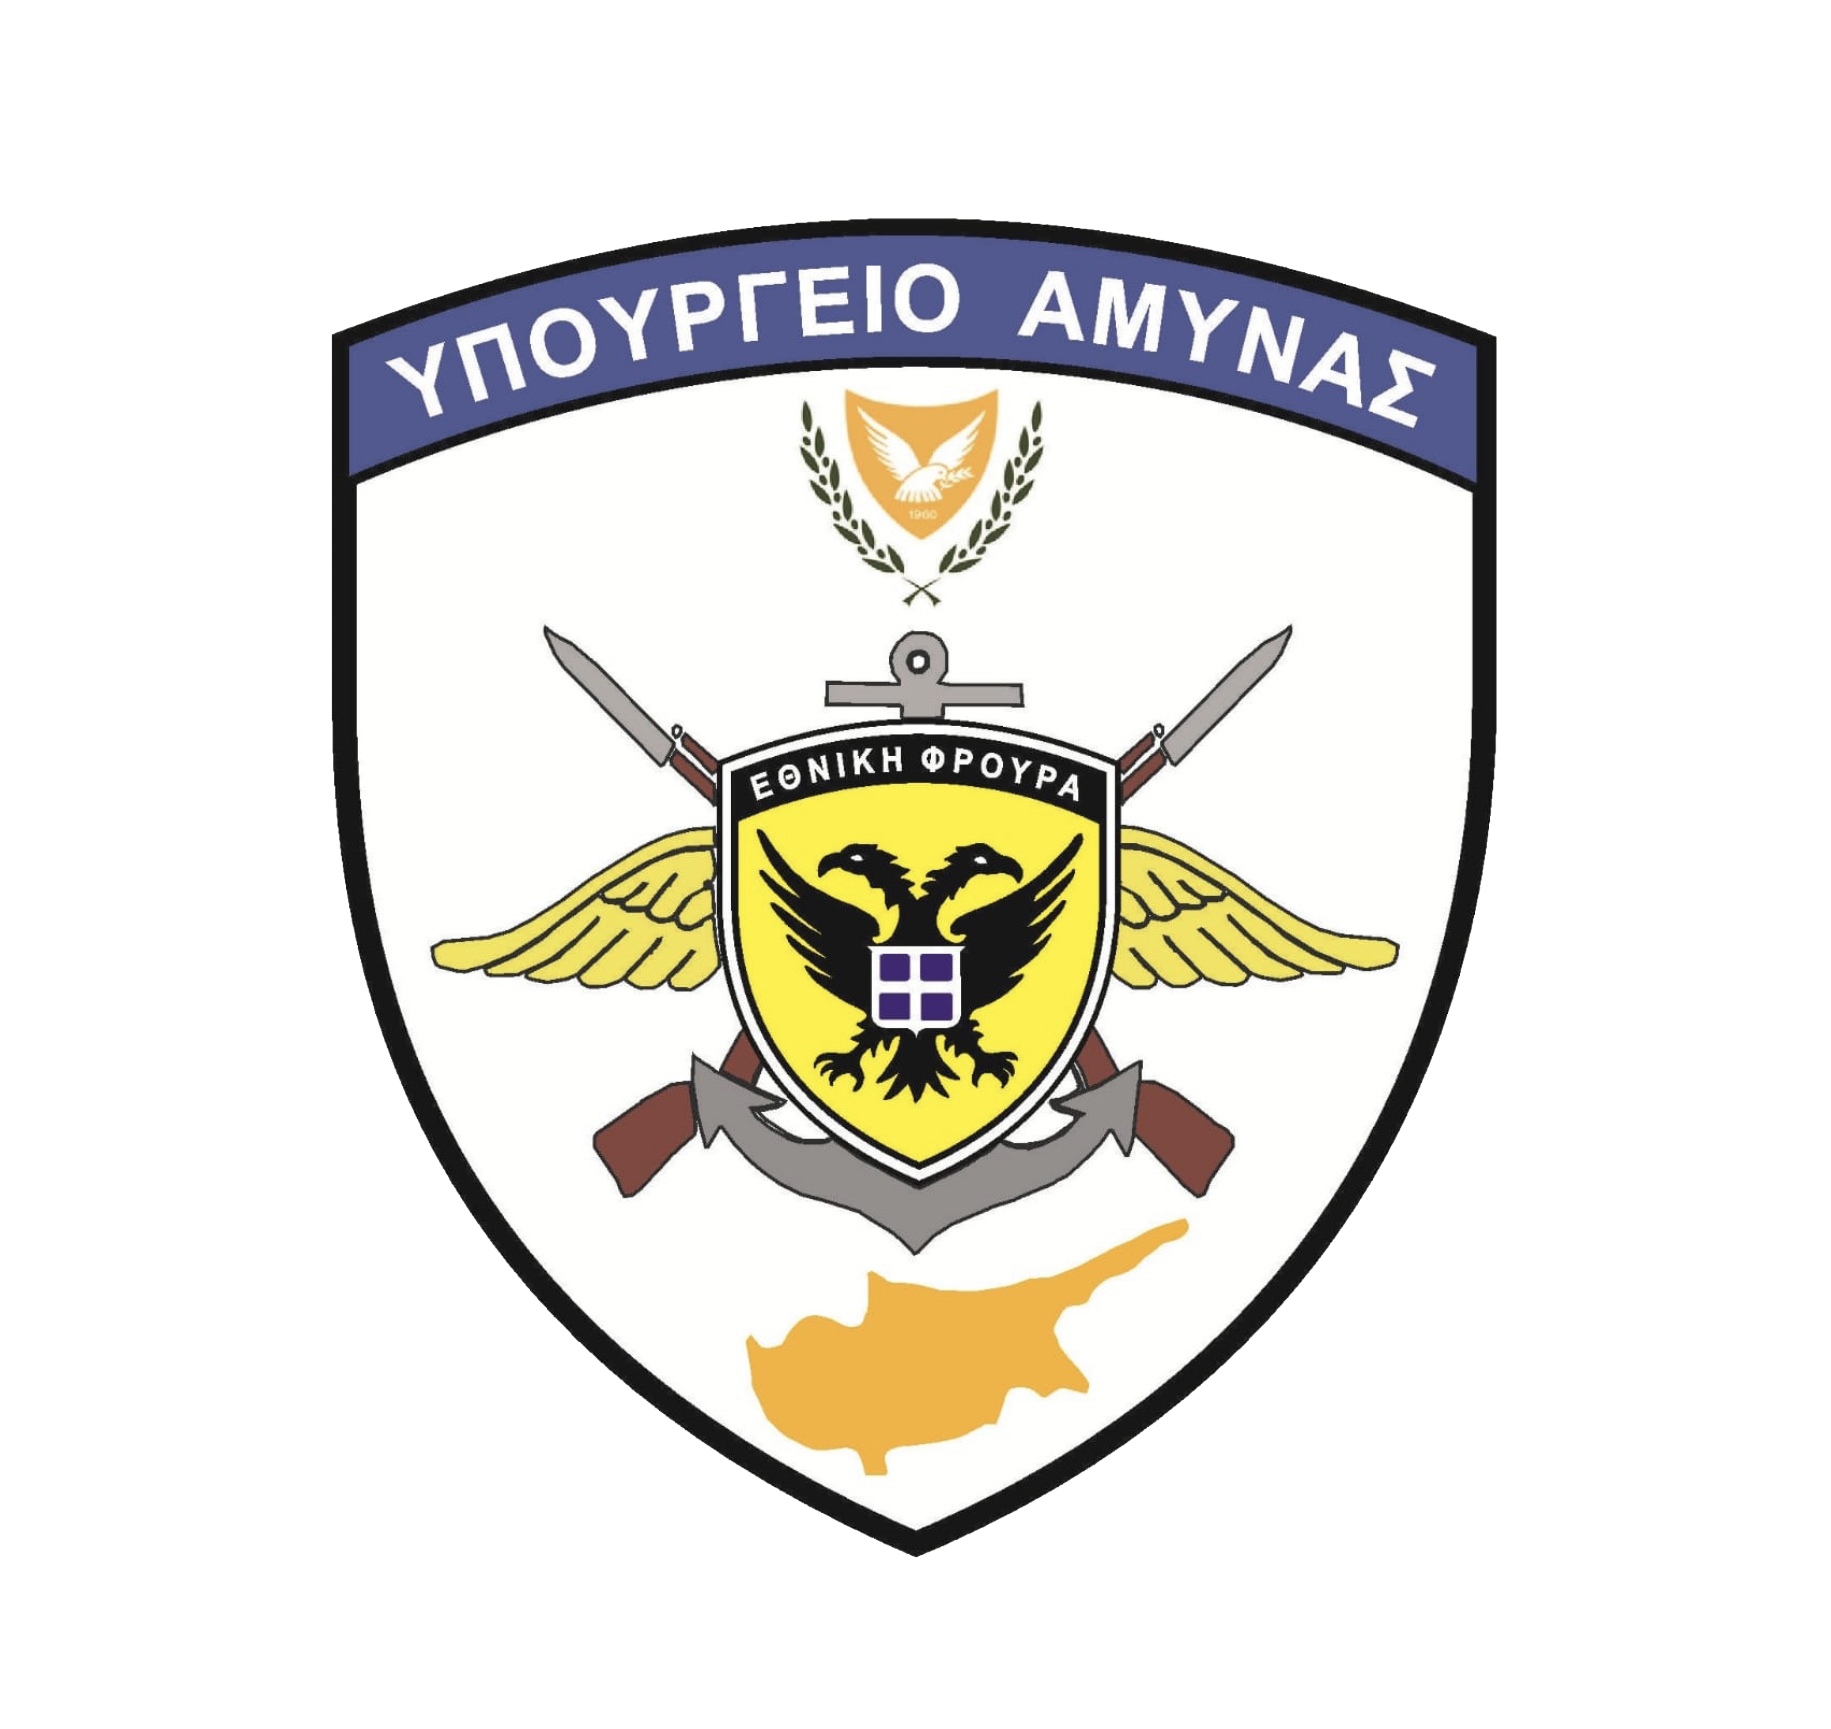 Cyprus Ministry of Defence